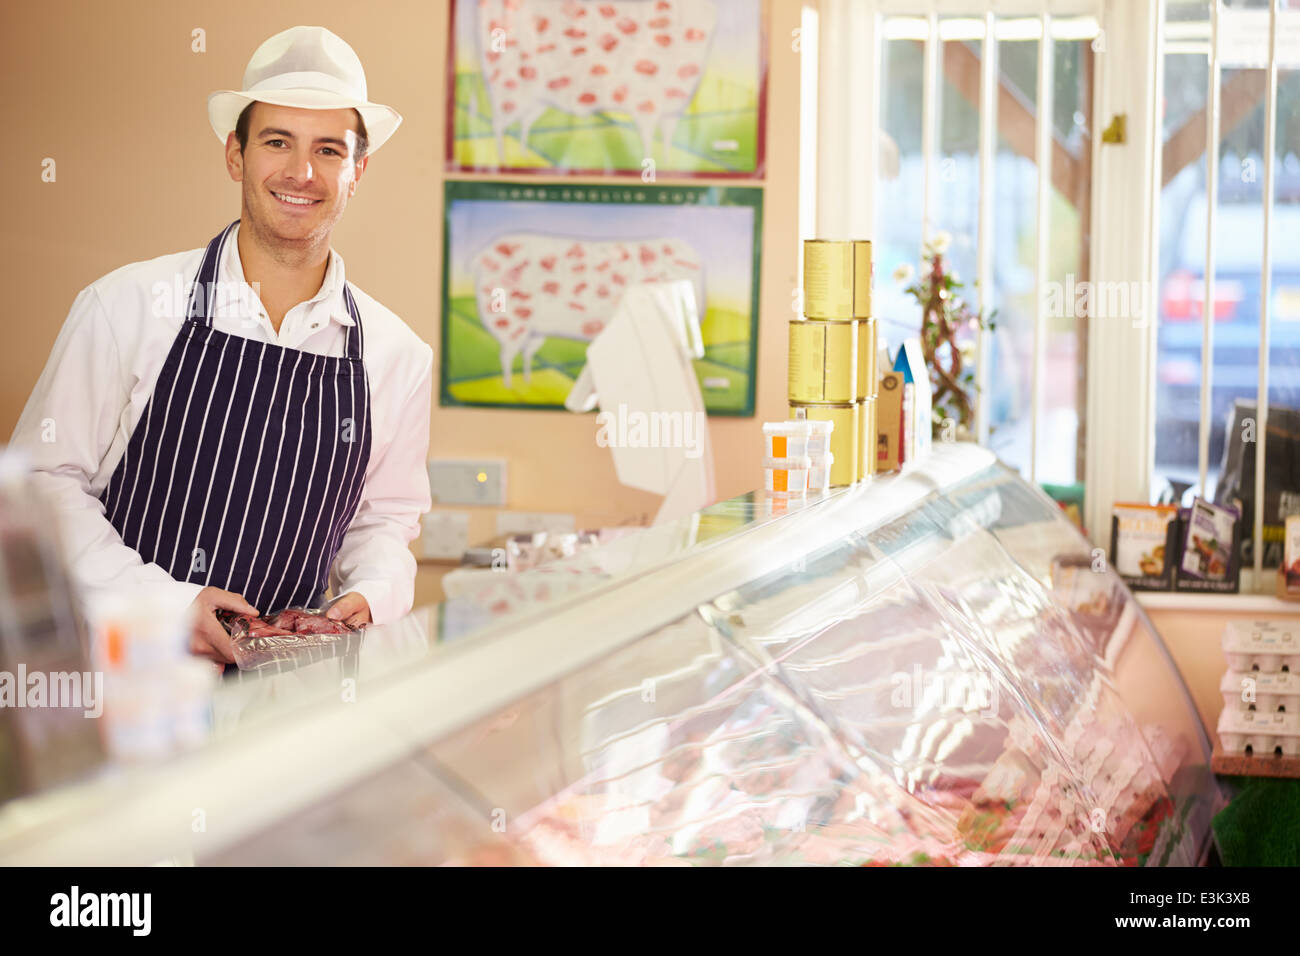 Butcher At Work In Shop - Stock Image